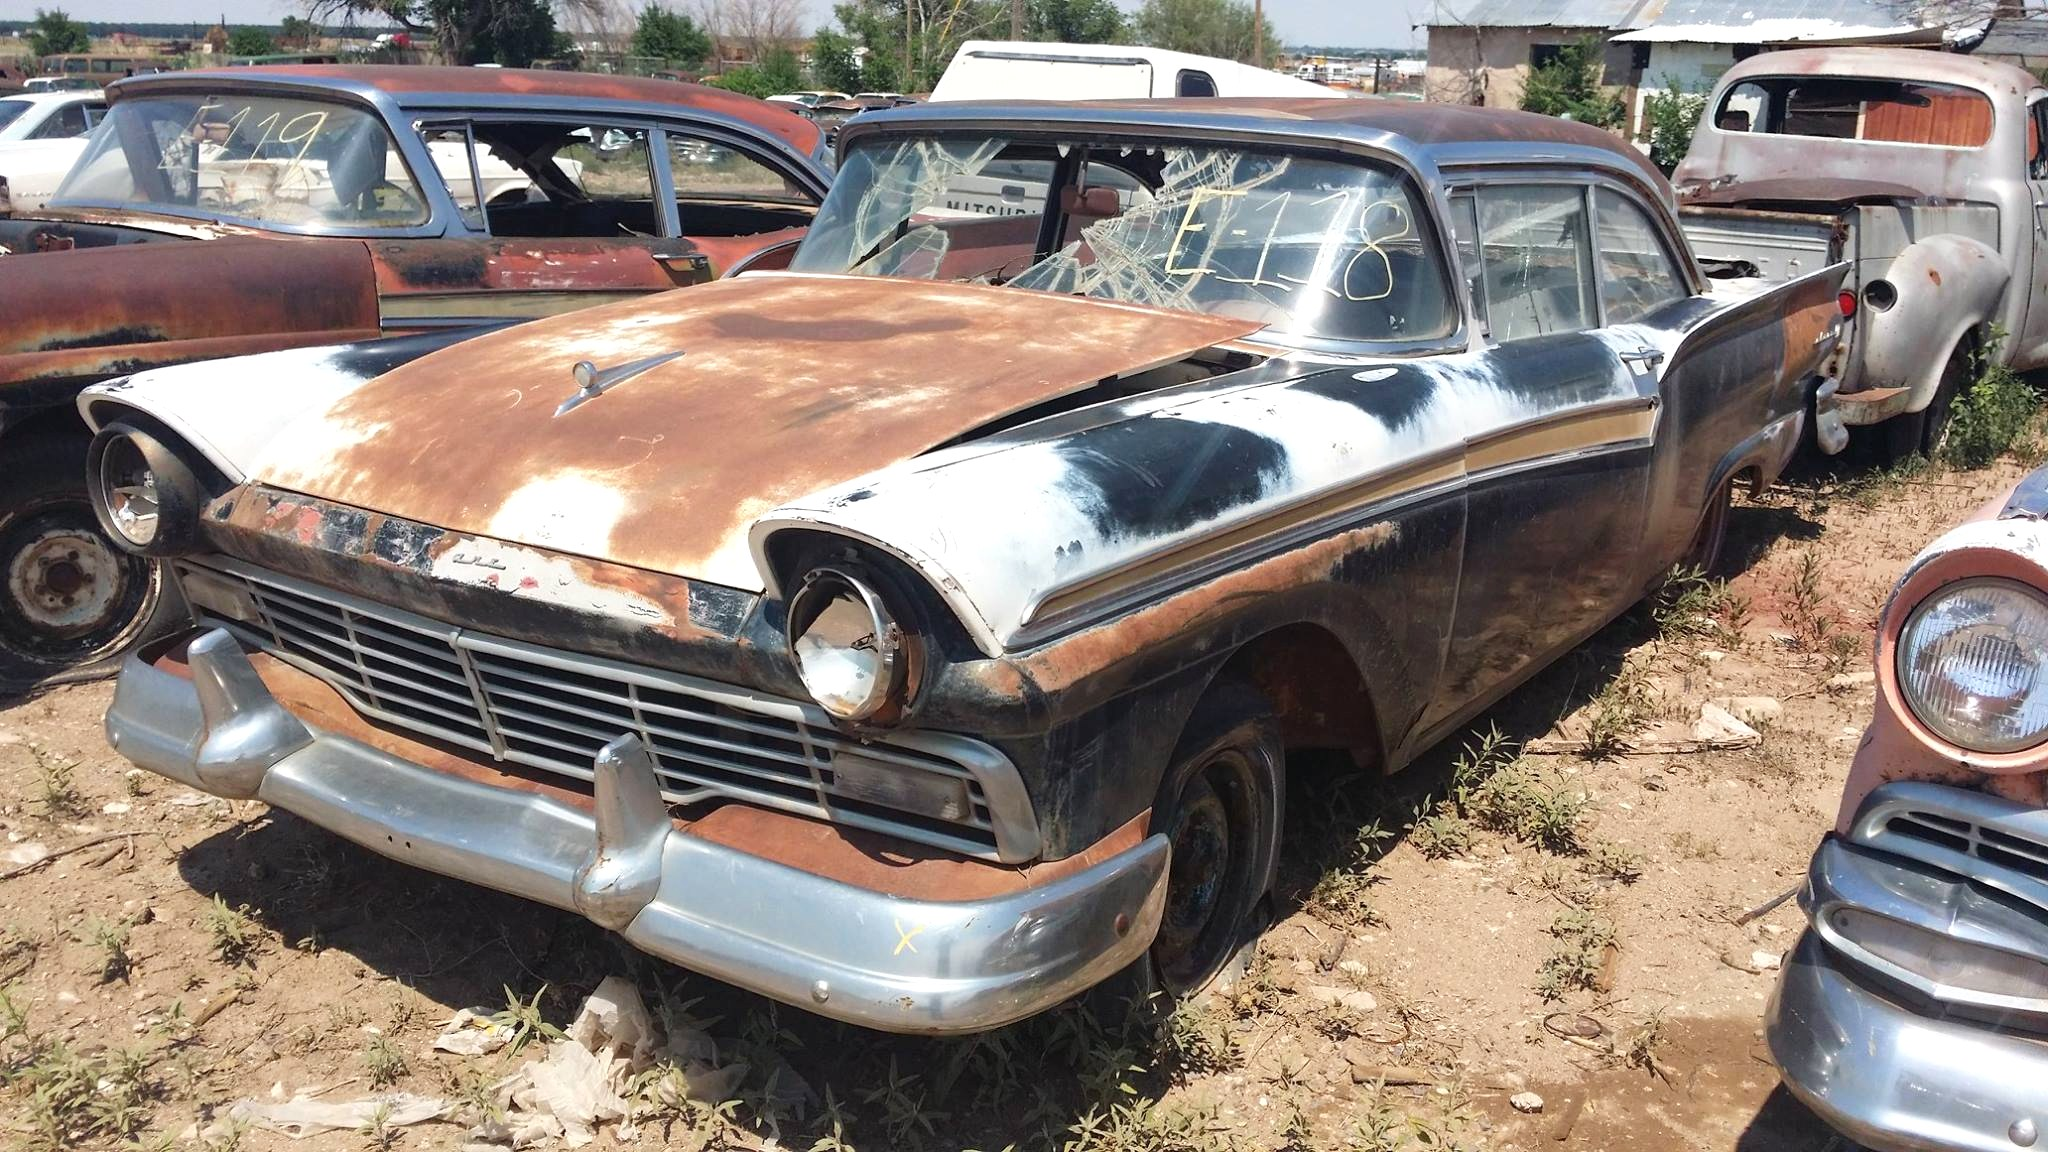 Last chance for close encounter at Roswell salvage yard ...